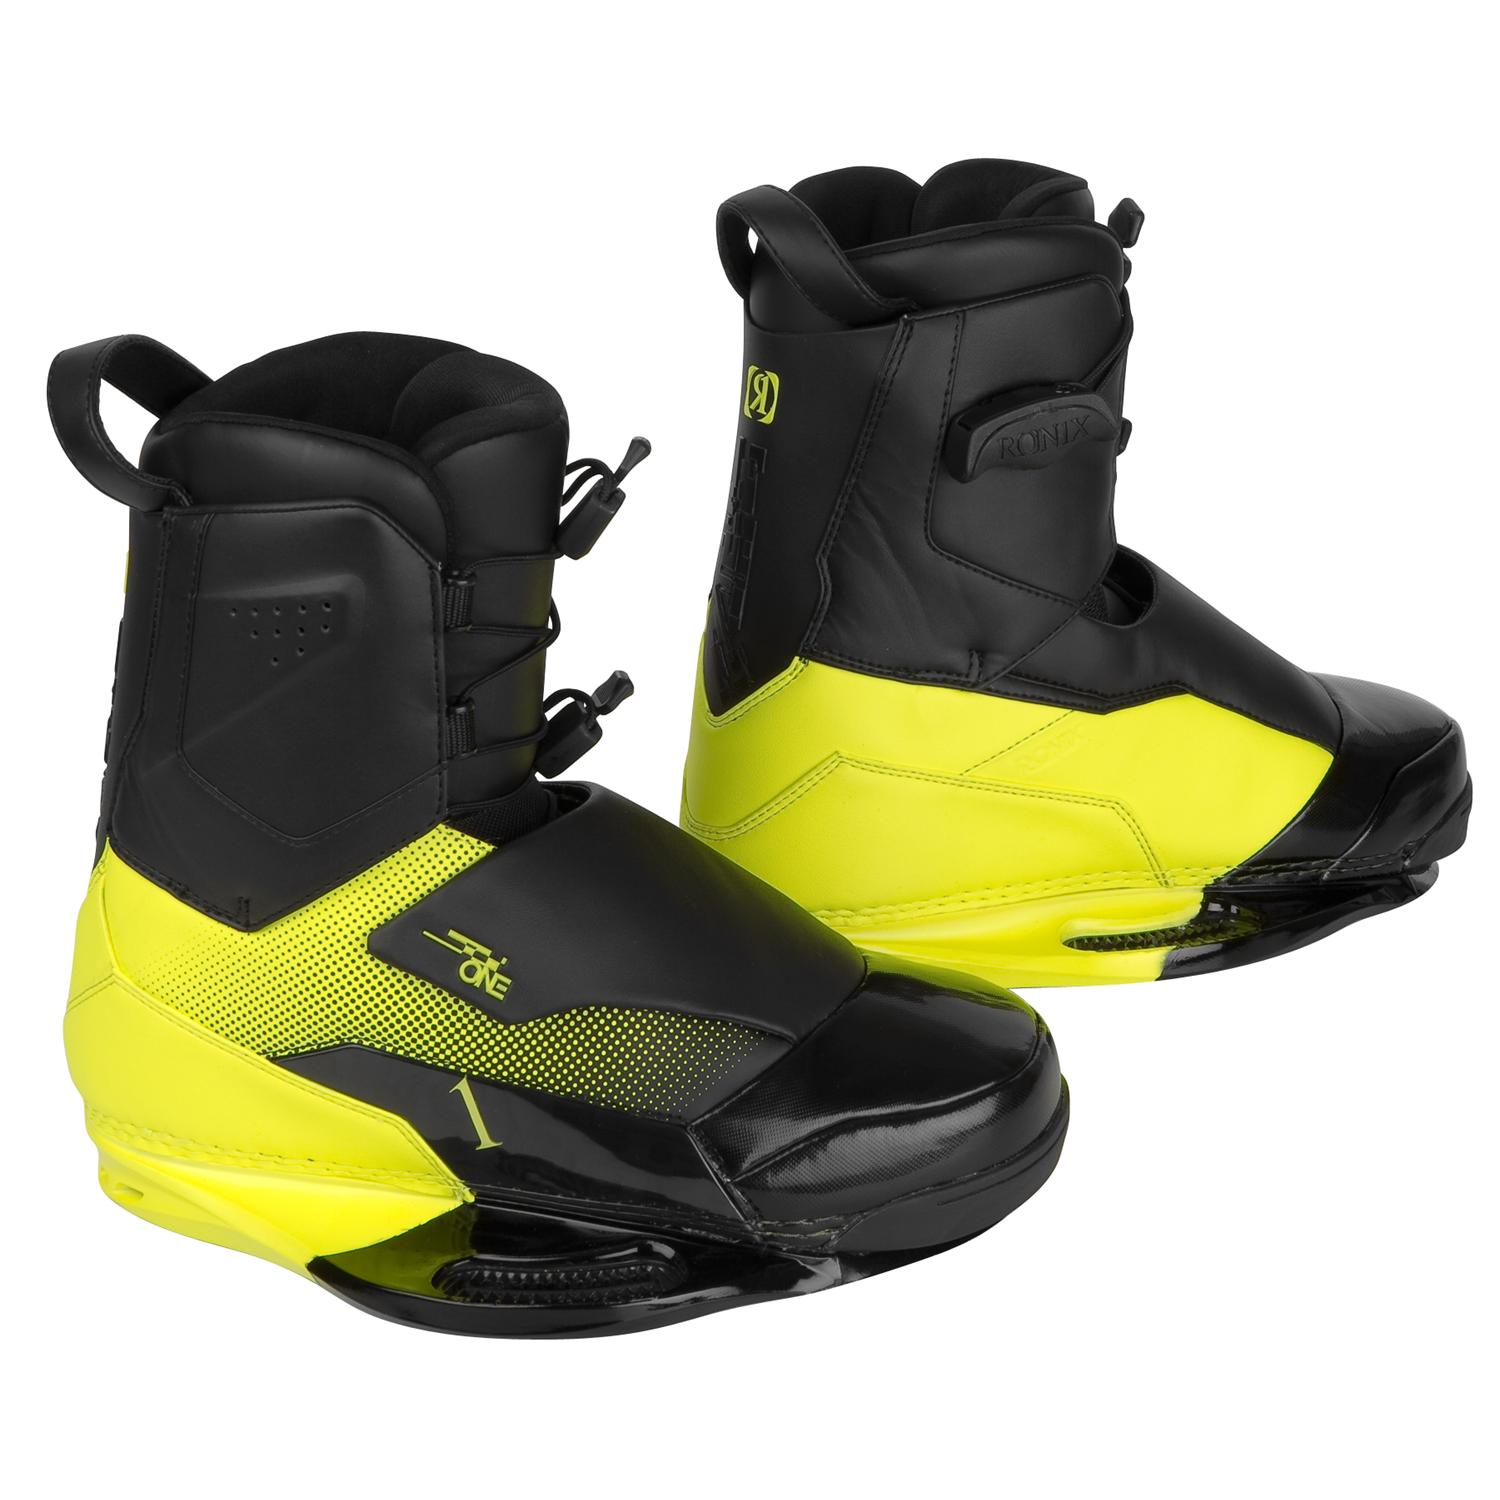 Ronix One ATR Edition Wakeboard (Blem) + One Bindings 2011